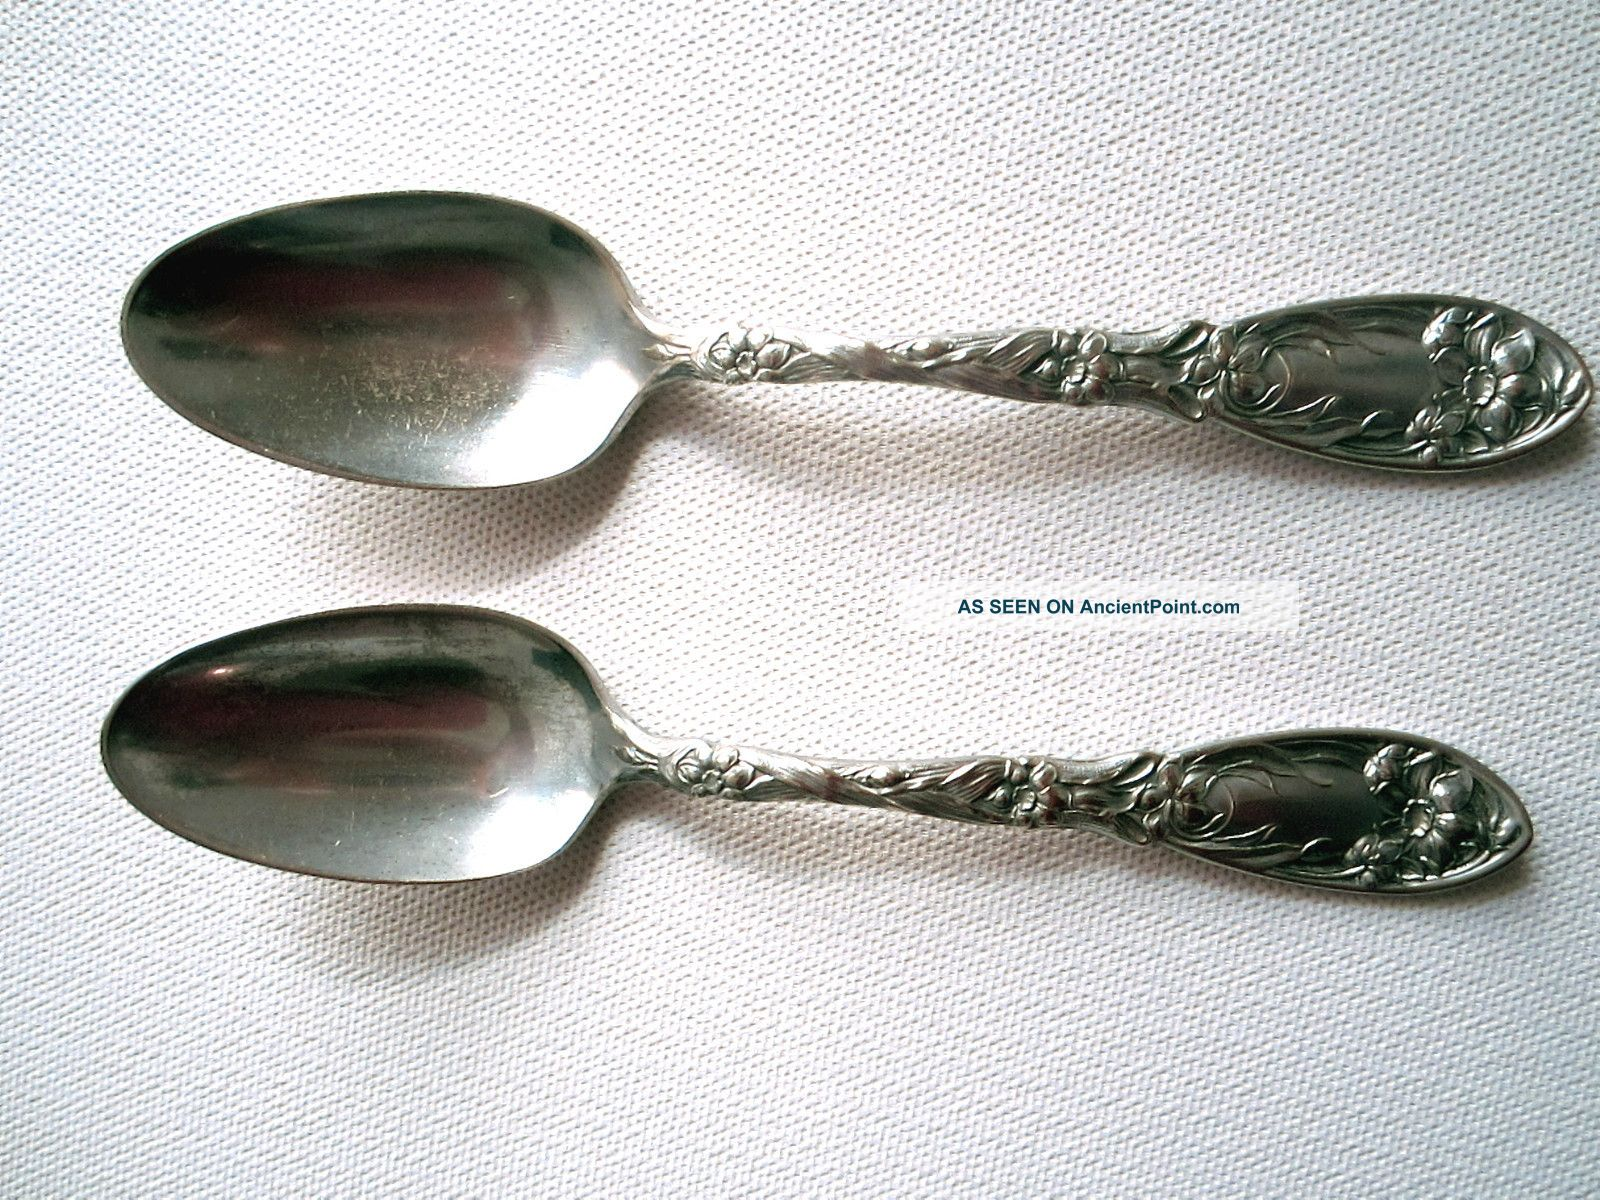 Oxford Narcissus Silverplate Teaspoons Other photo